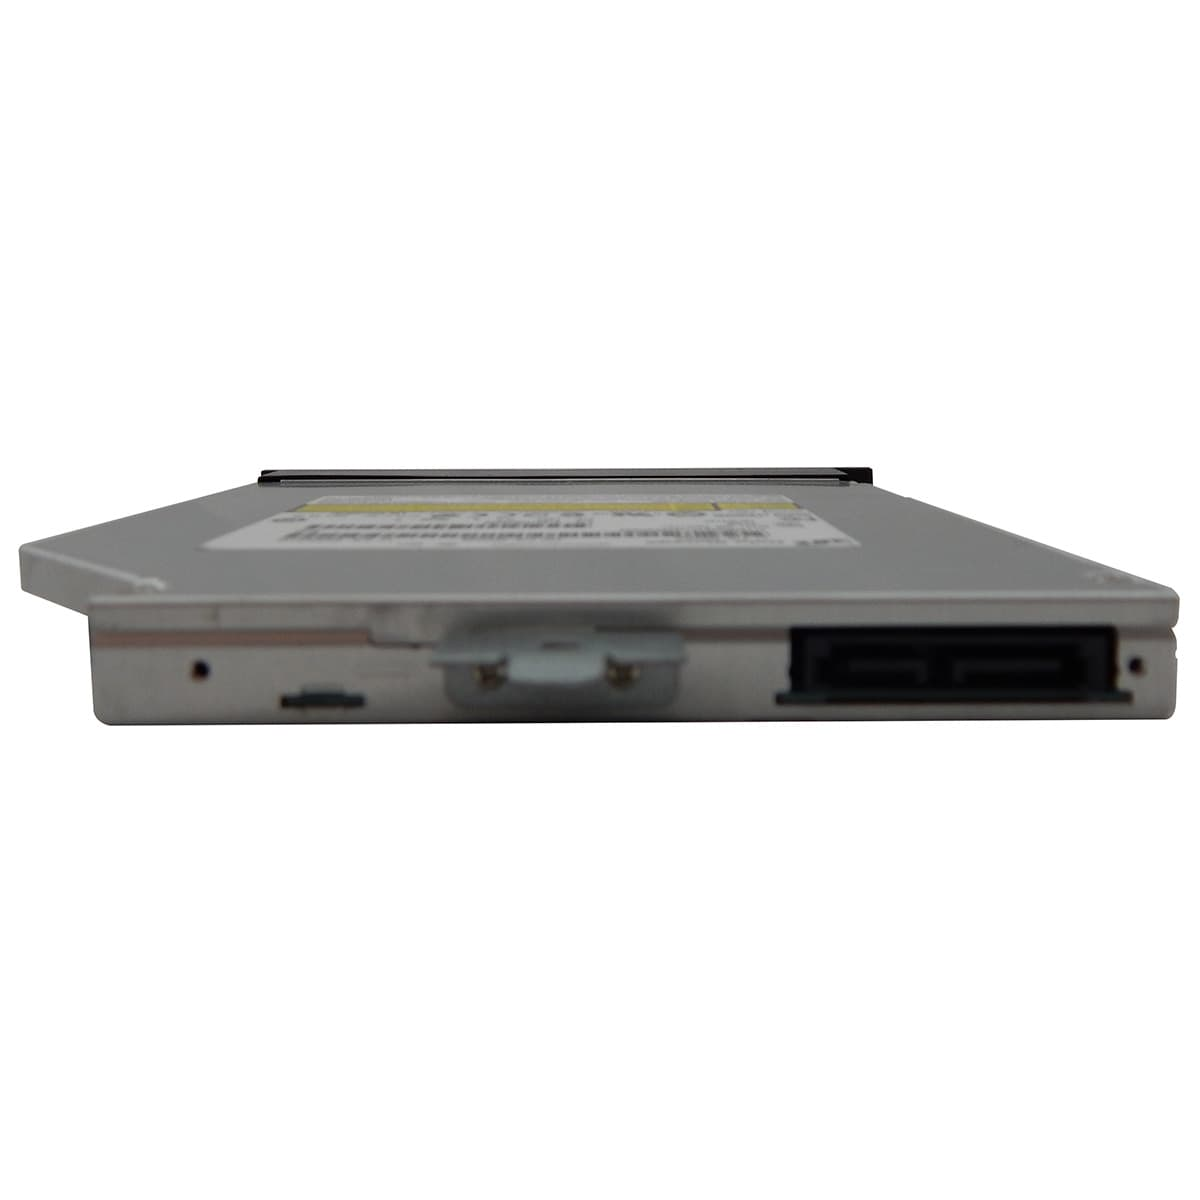 Driver CD/DVD p/ Notebook Model LGE - GT30N (B) - GT30N